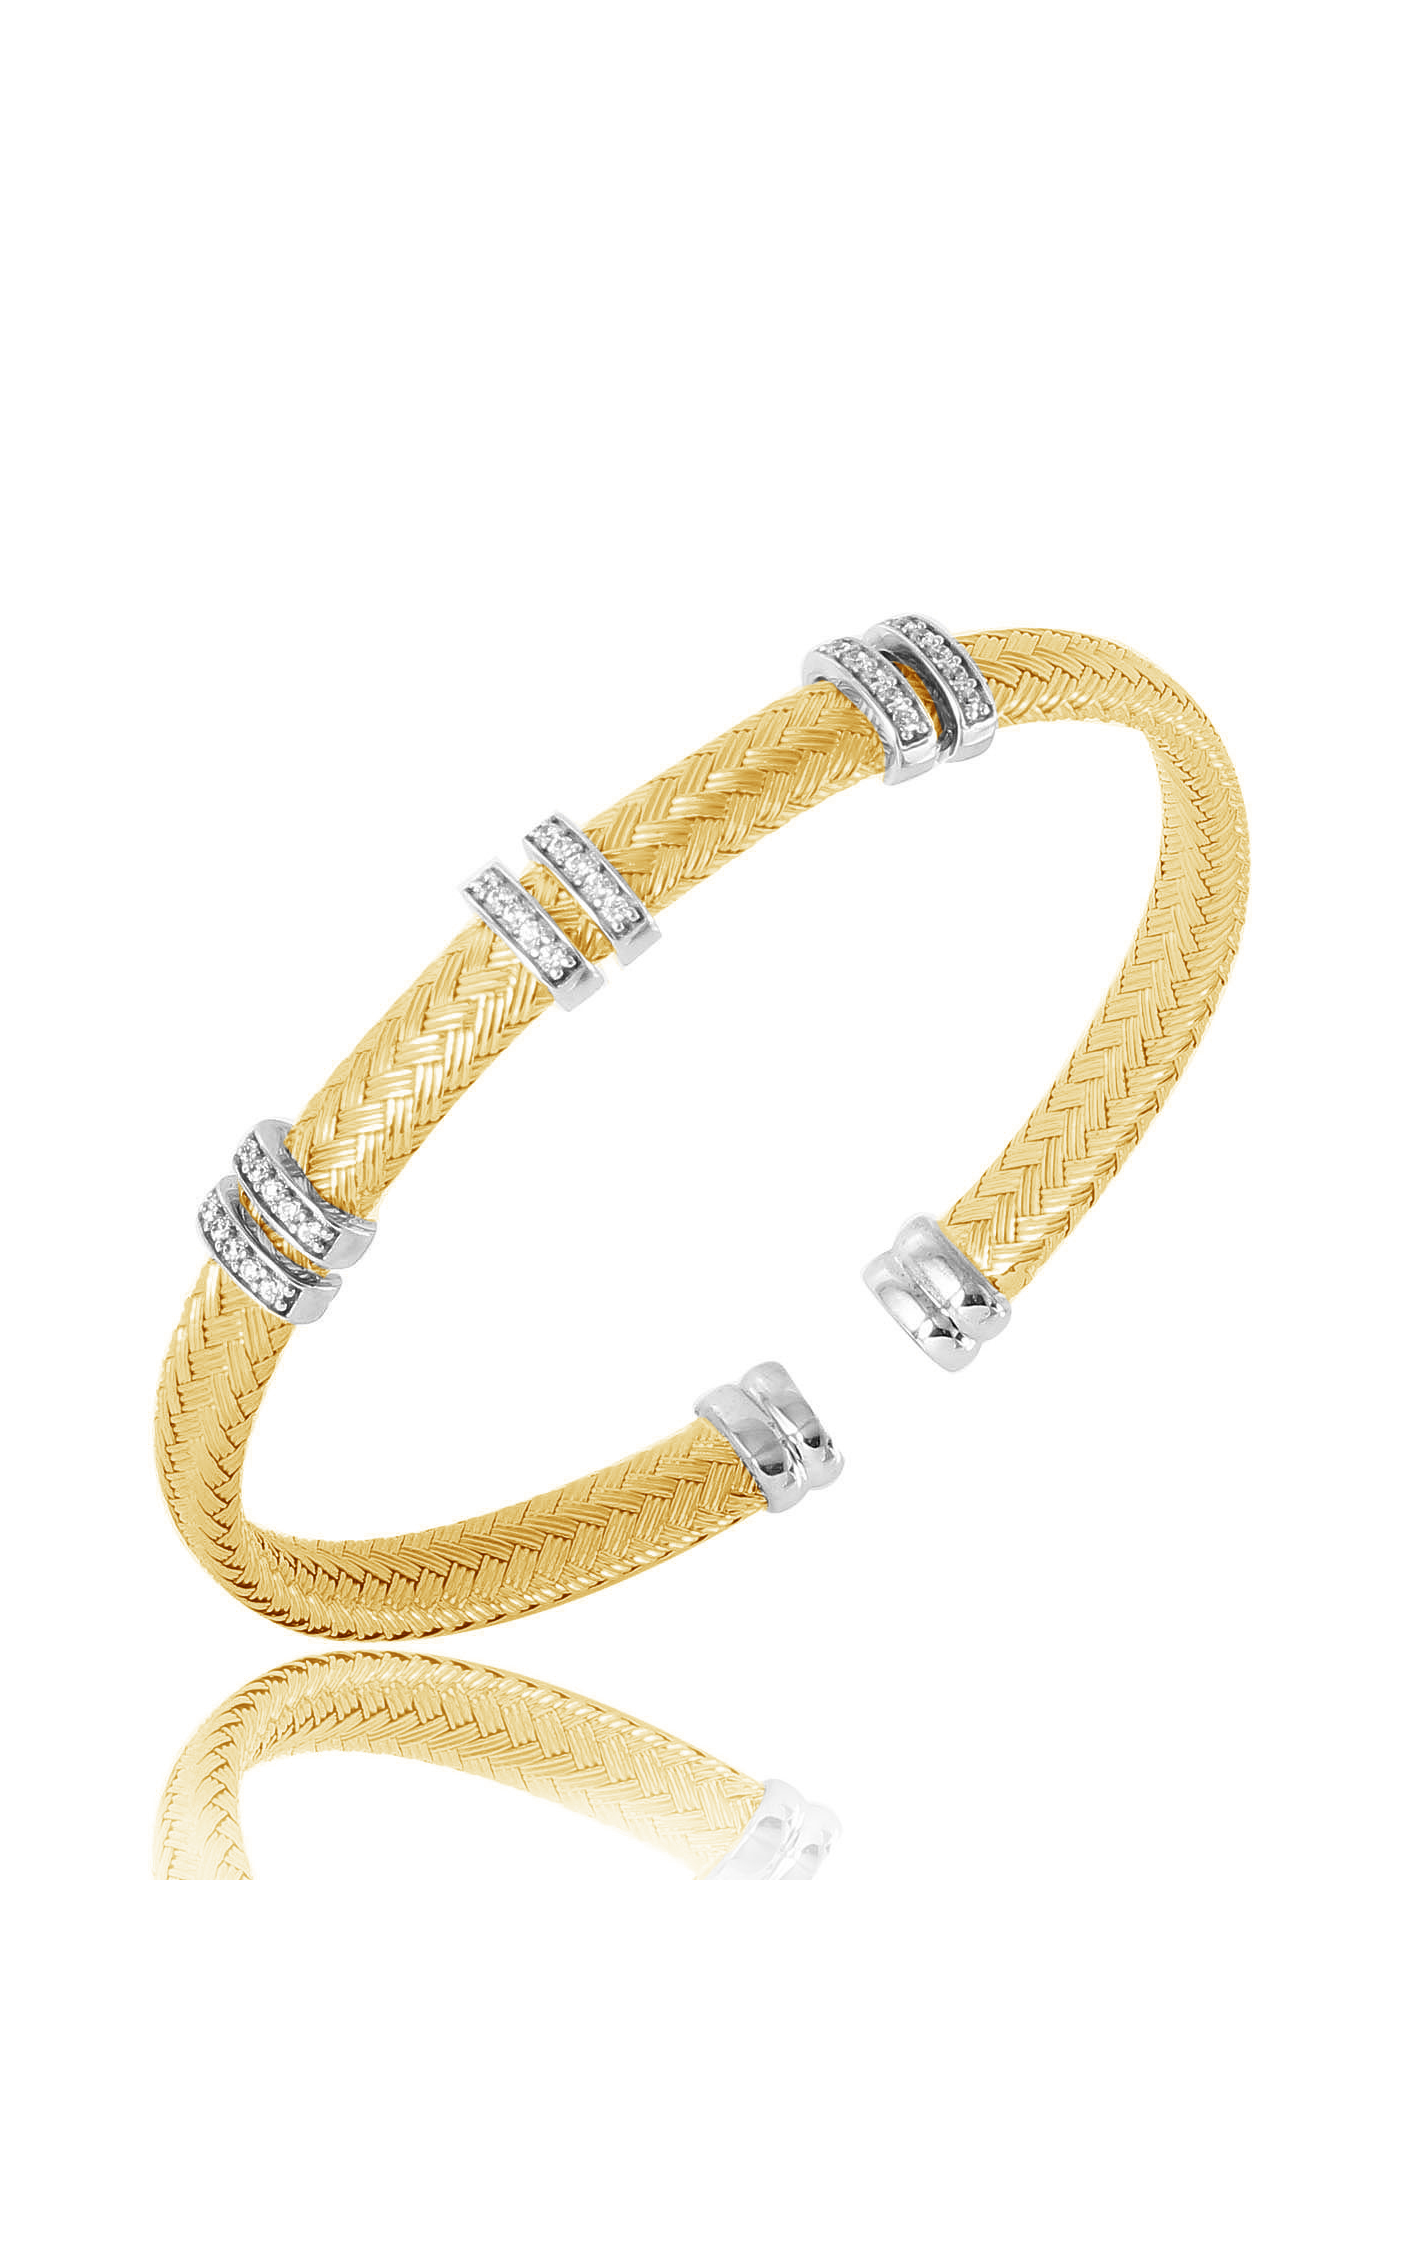 Charles Garnier Bracelets Bracelet Paolo Collection MLC8167YWZ product image